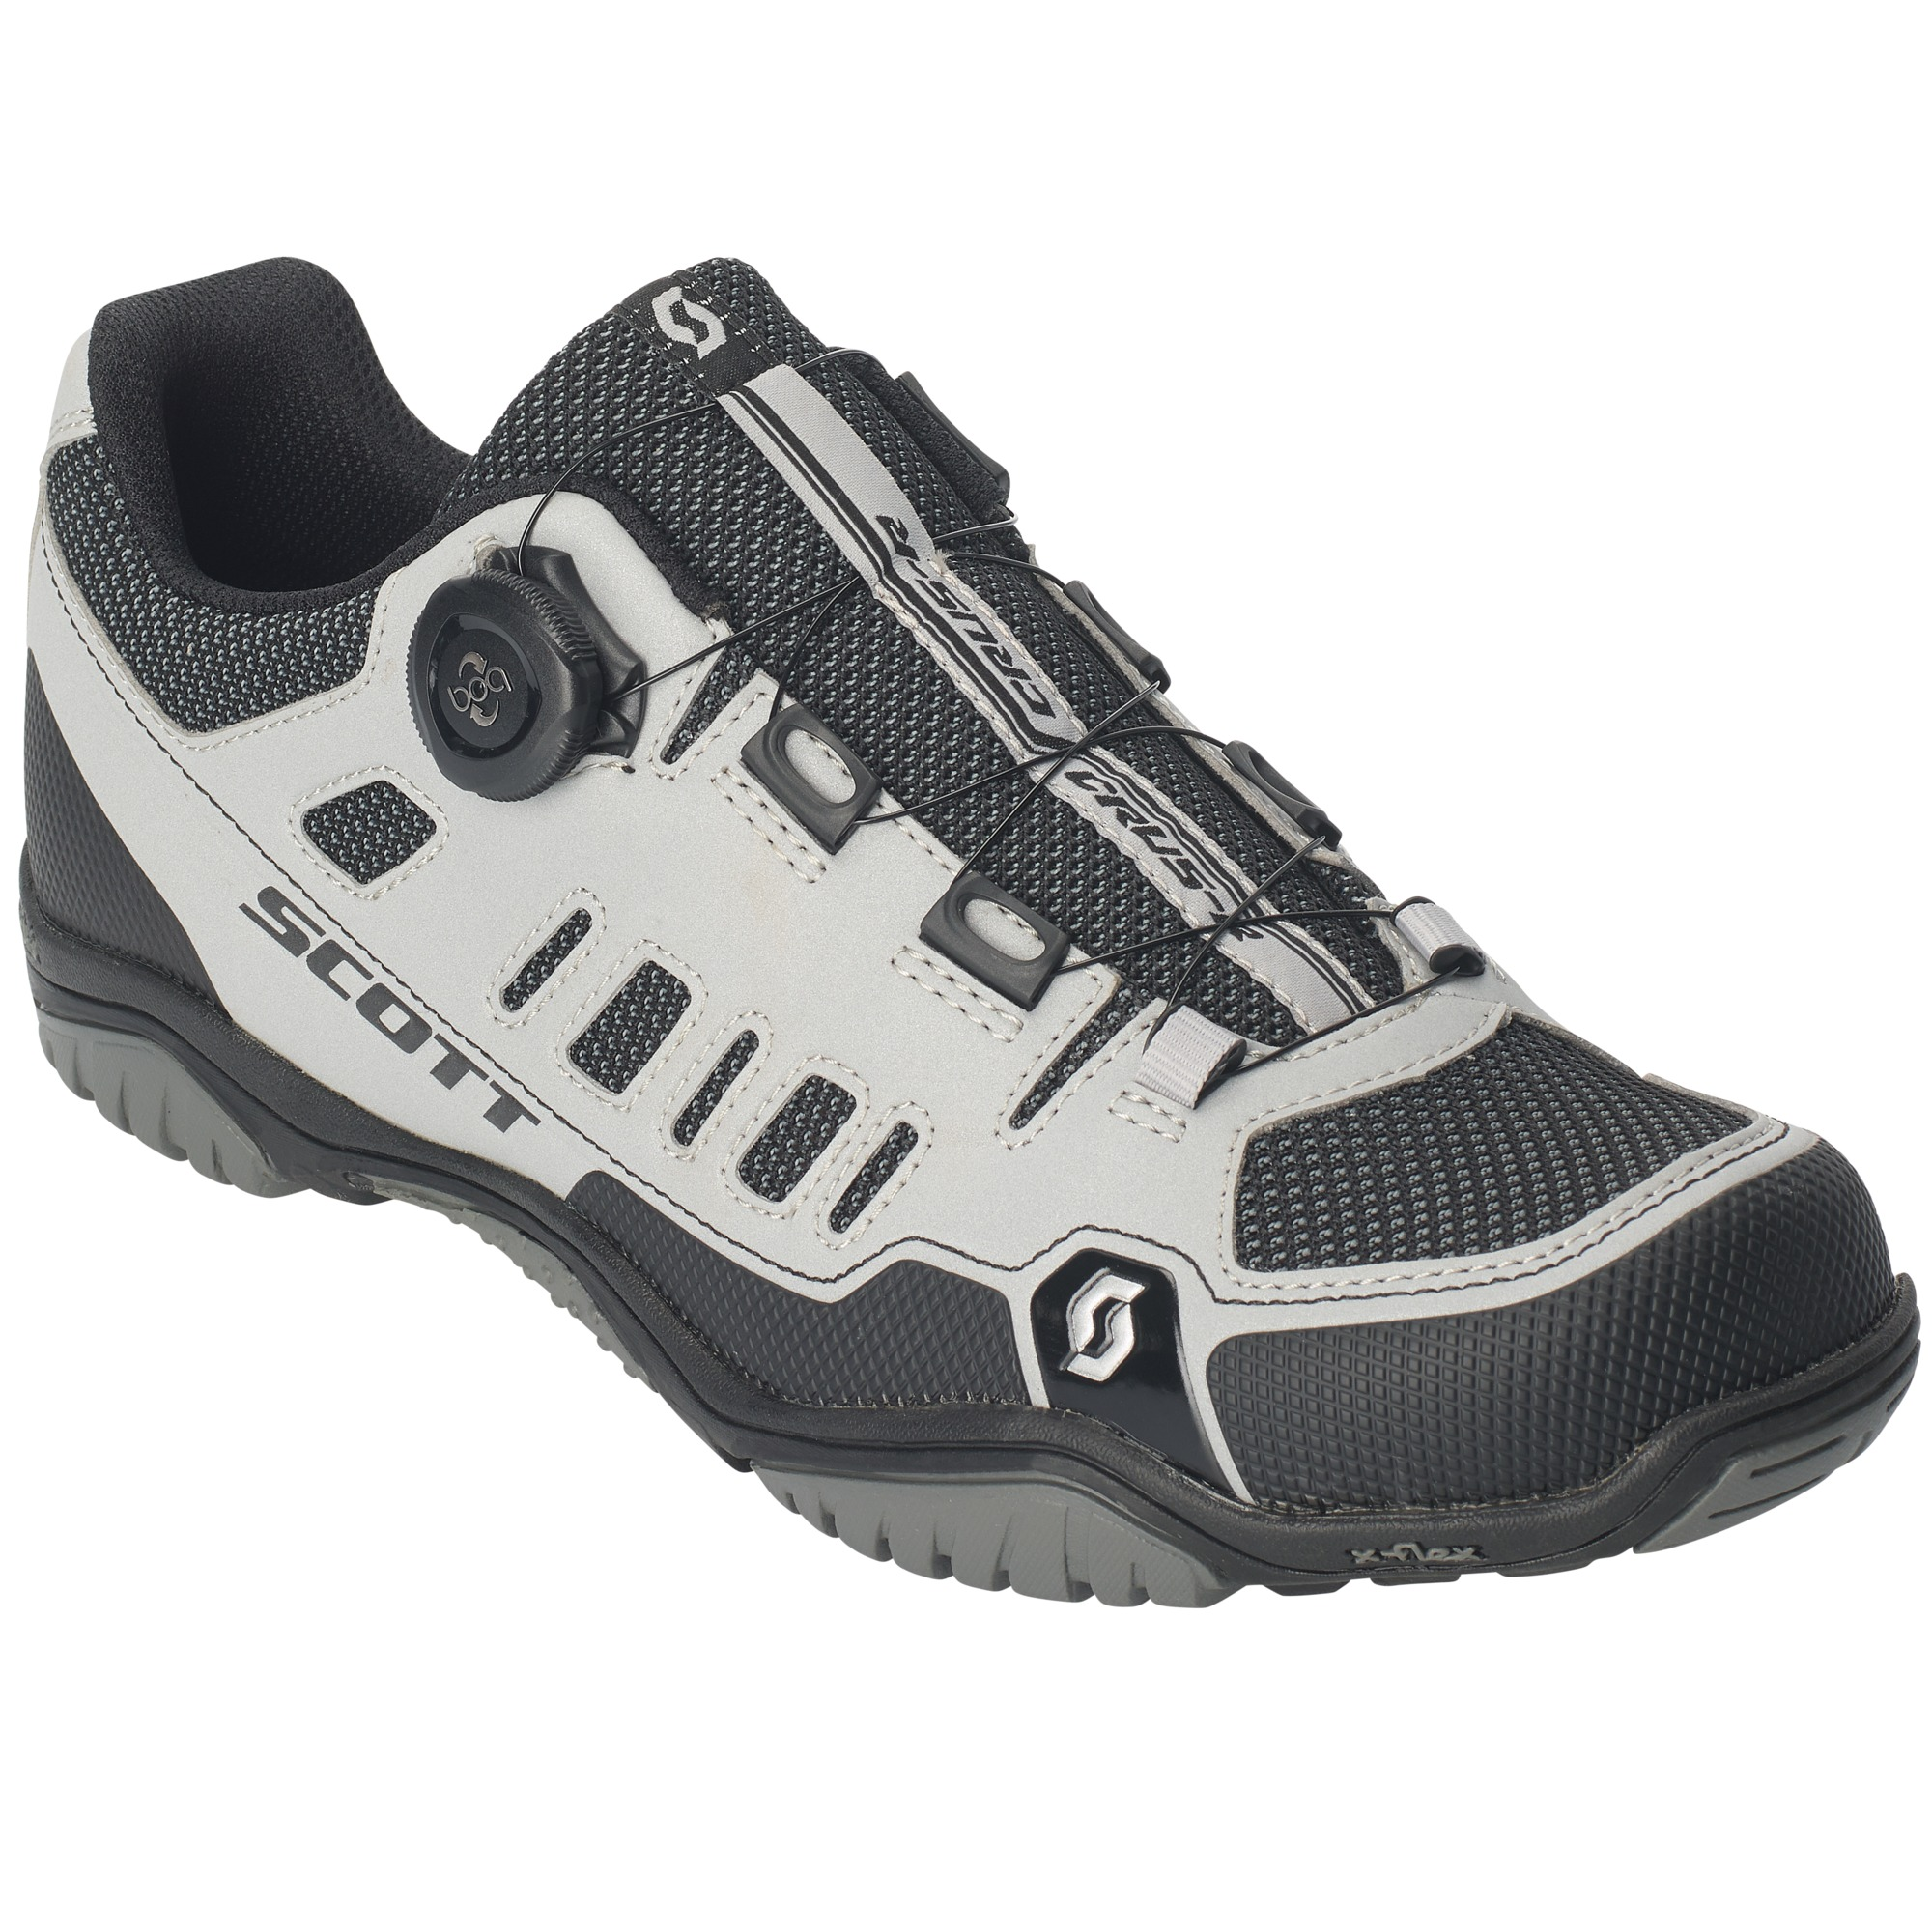 SCOTT Sport Crus-r Boa Reflective Lady Shoe